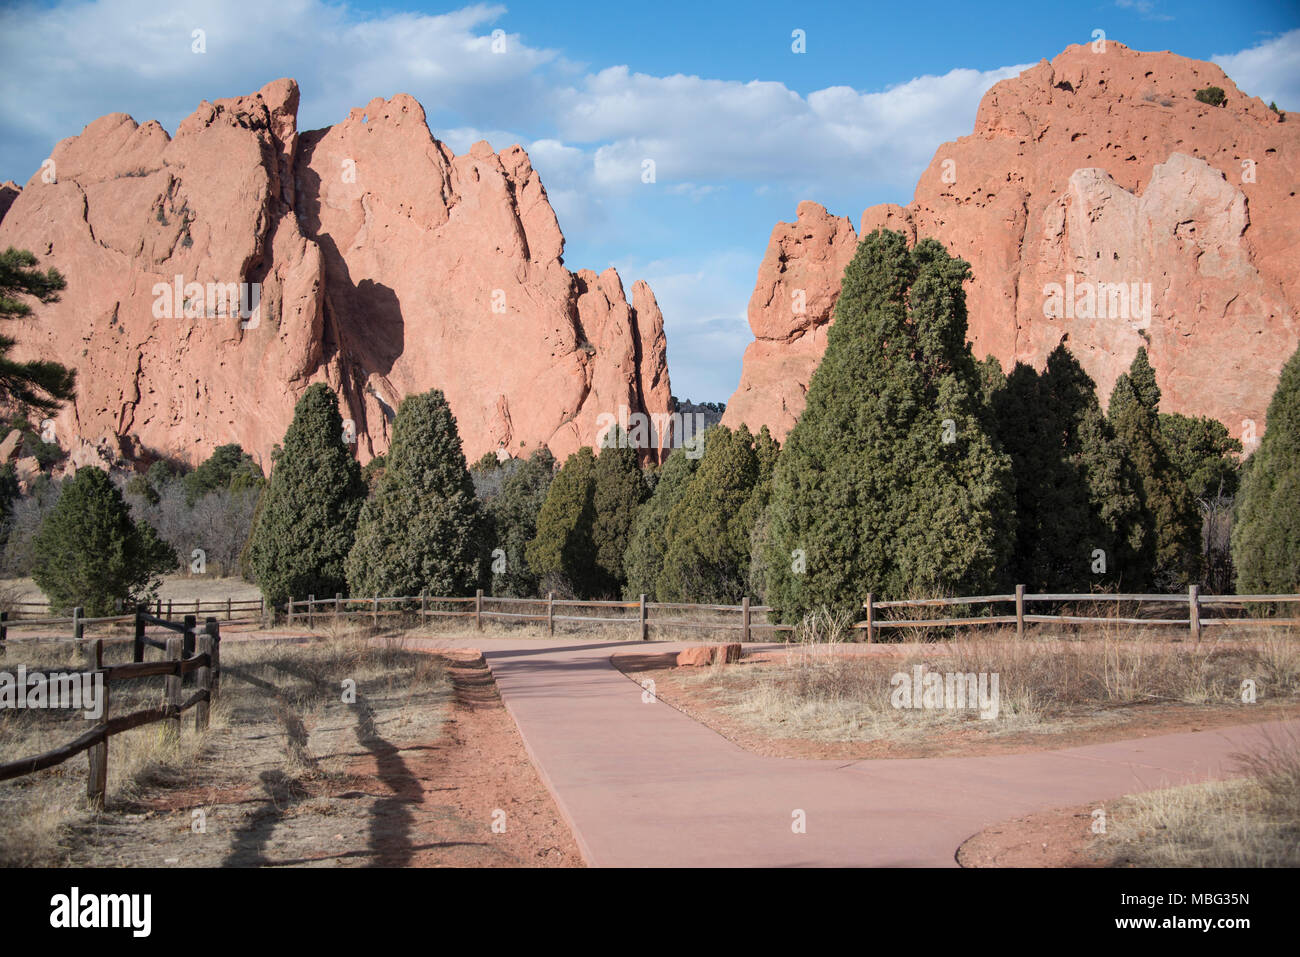 Popular bike and walking trail at Garden of Gods, Colorado Springs, CO - Stock Image